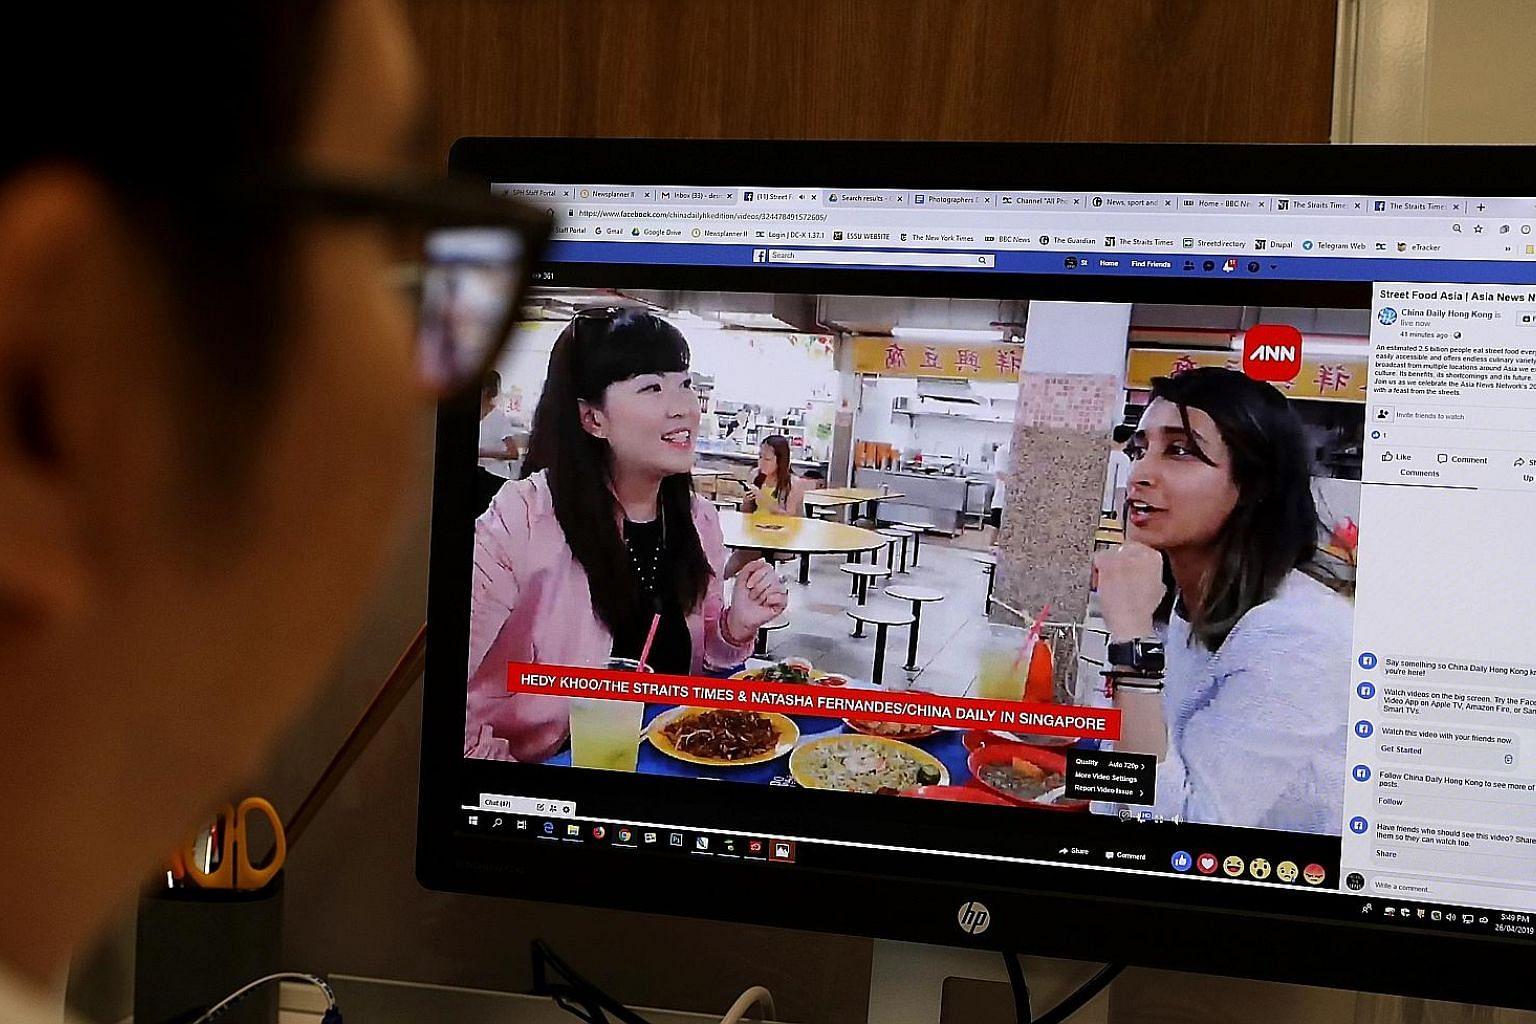 A viewer watching The Straits Times' STFood online editor Hedy Khoo (left) and Hong Kong's China Daily senior multimedia producer Natasha Fernandes' Facebook livestream yesterday from People's Park Centre in Singapore, where they tucked into local st